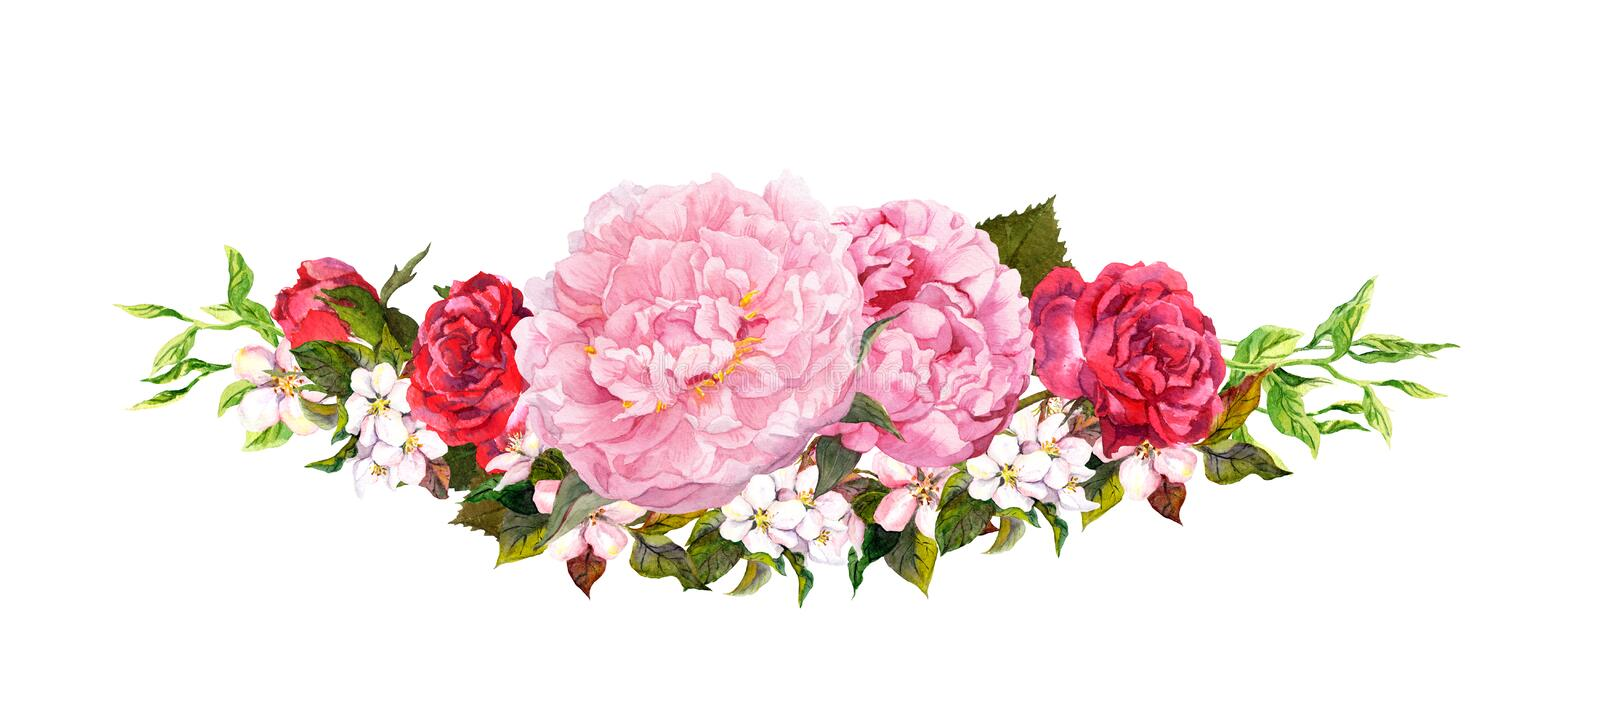 Pink peony flowers, roses, white apple or cherry flowers. Watercolor in vintage style vector illustration